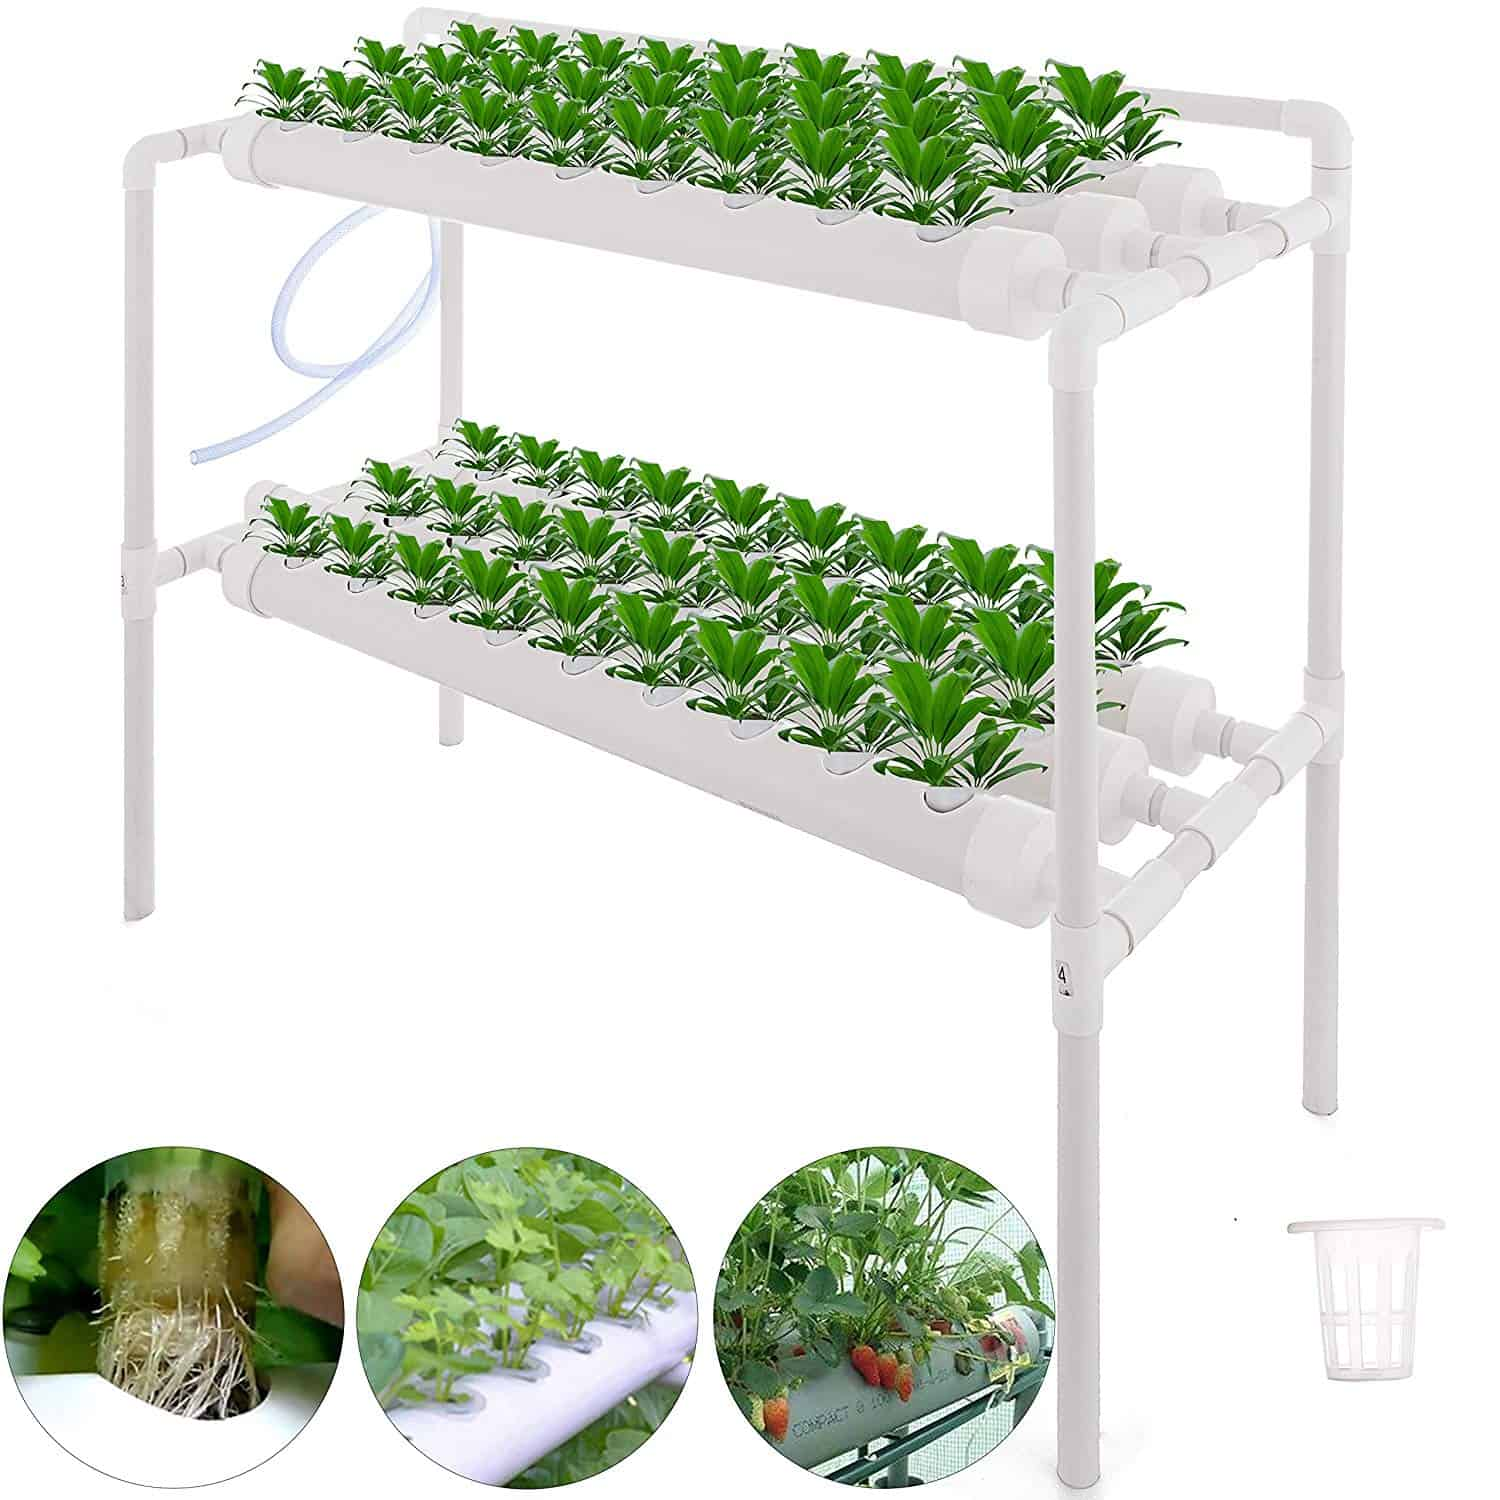 product photo of DreamJoy Hydroponic Growing System